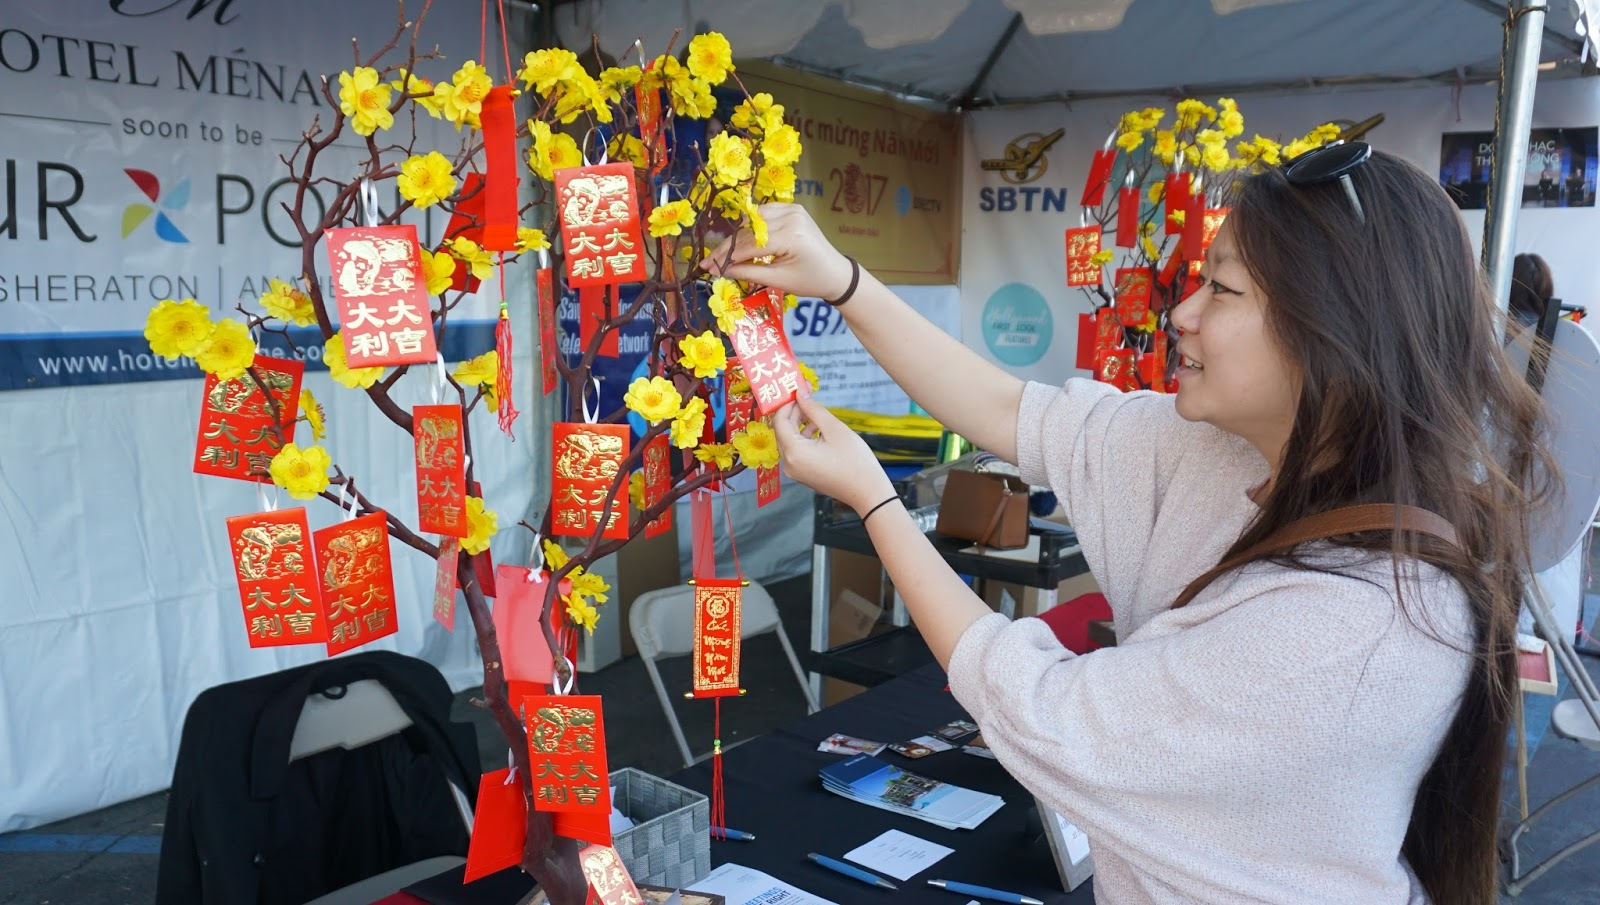 Photo Diary | My 36th Annual UVSA Tet Festival of Orange County Recap